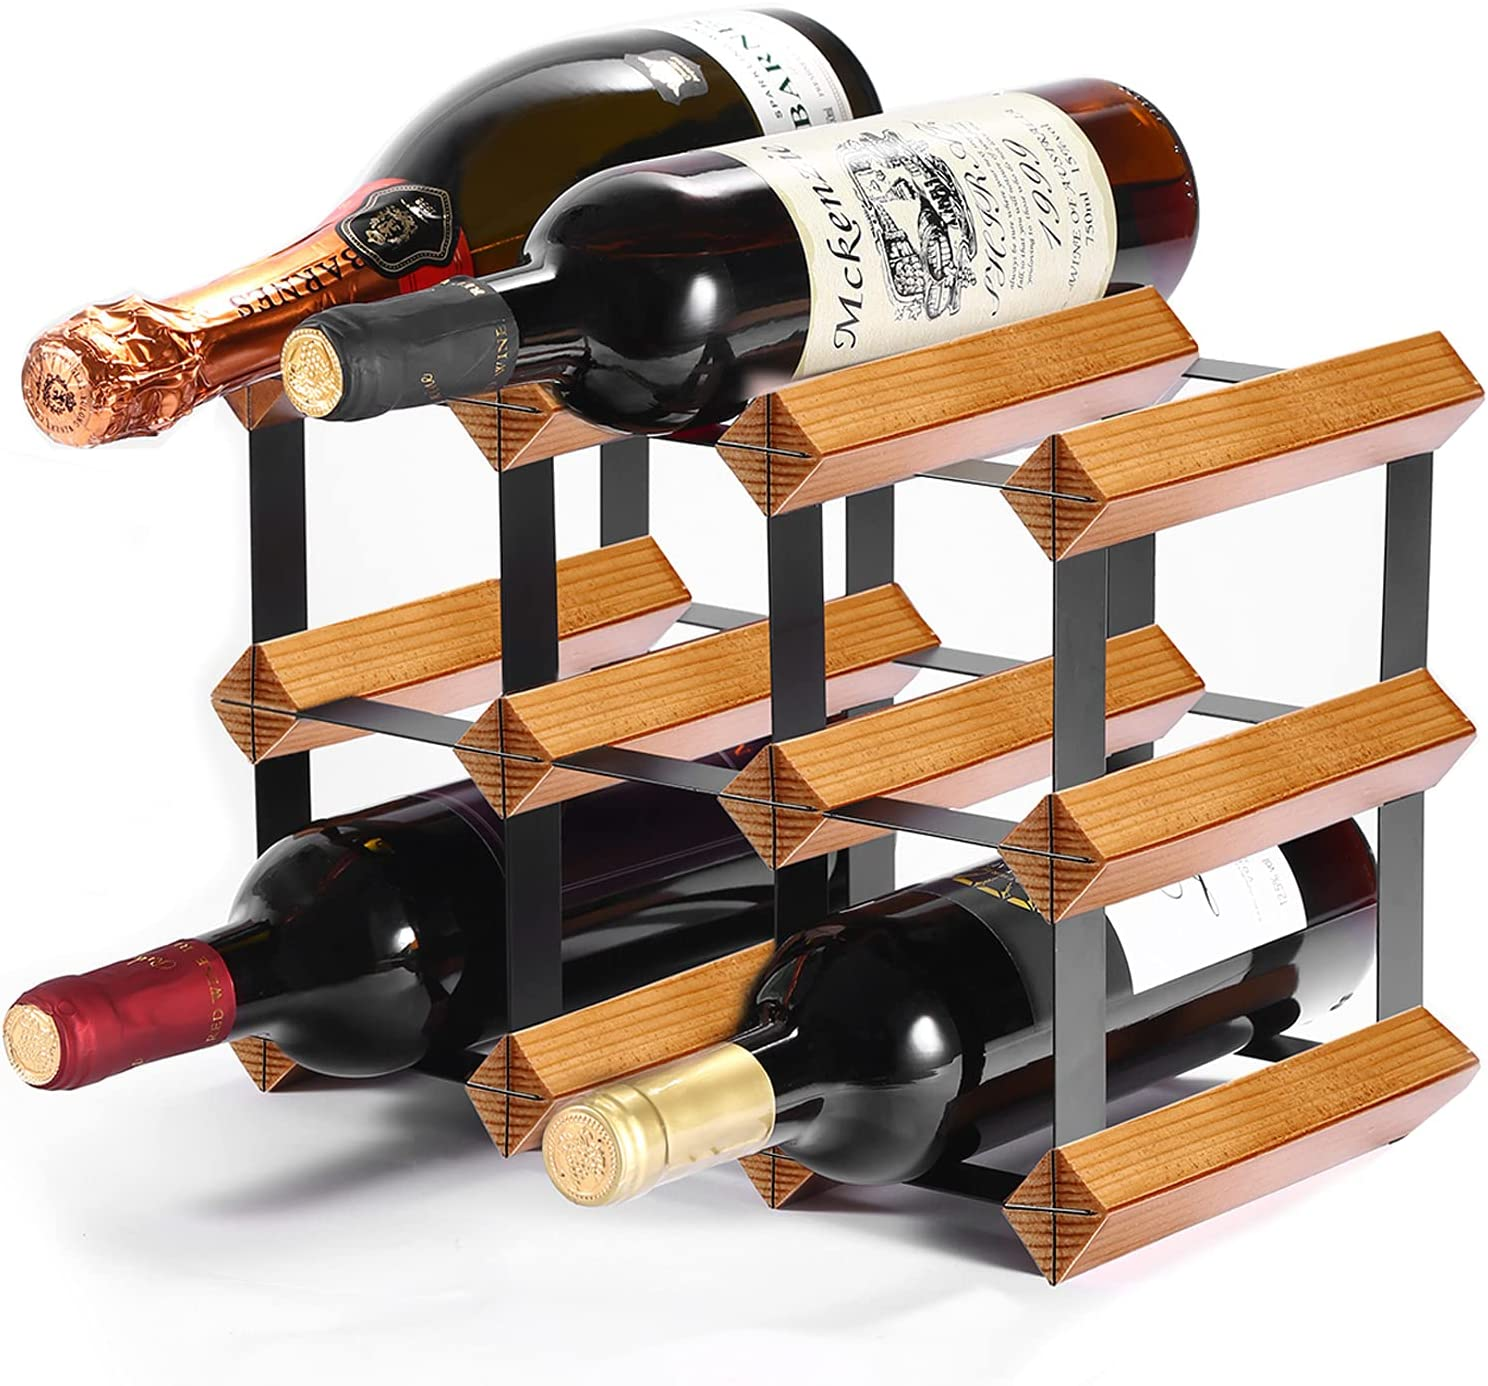 New Free Shipping Wood Countertop Wine Directly managed store Rack 9 Bottles Need Assembly Bottle No